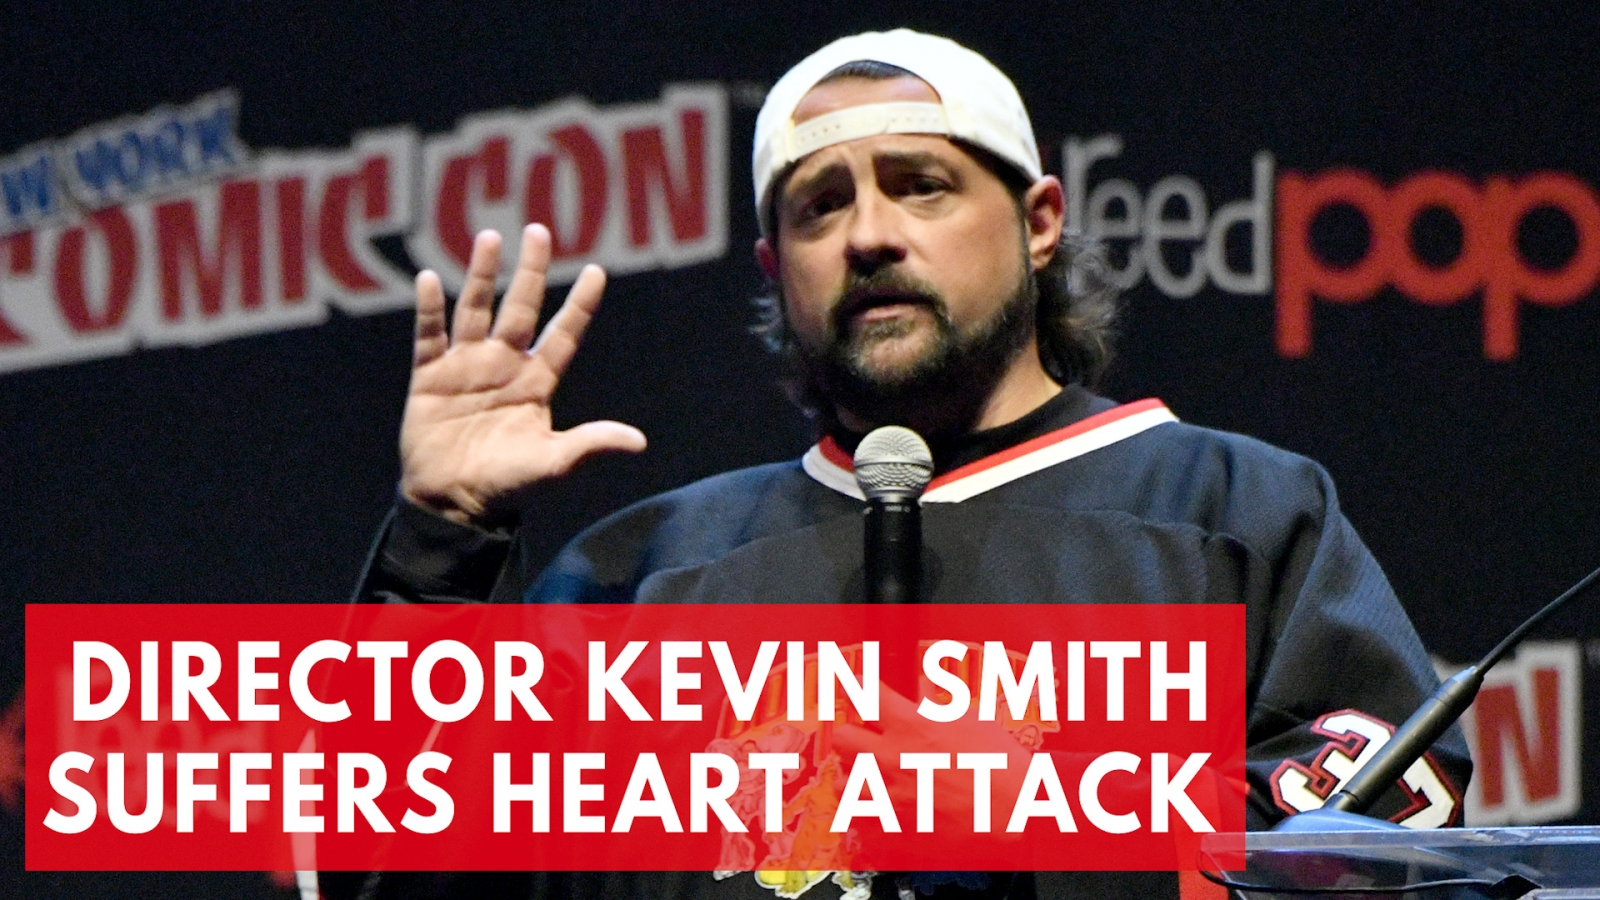 'Clerks' director Kevin Smith suffers massive heart attack